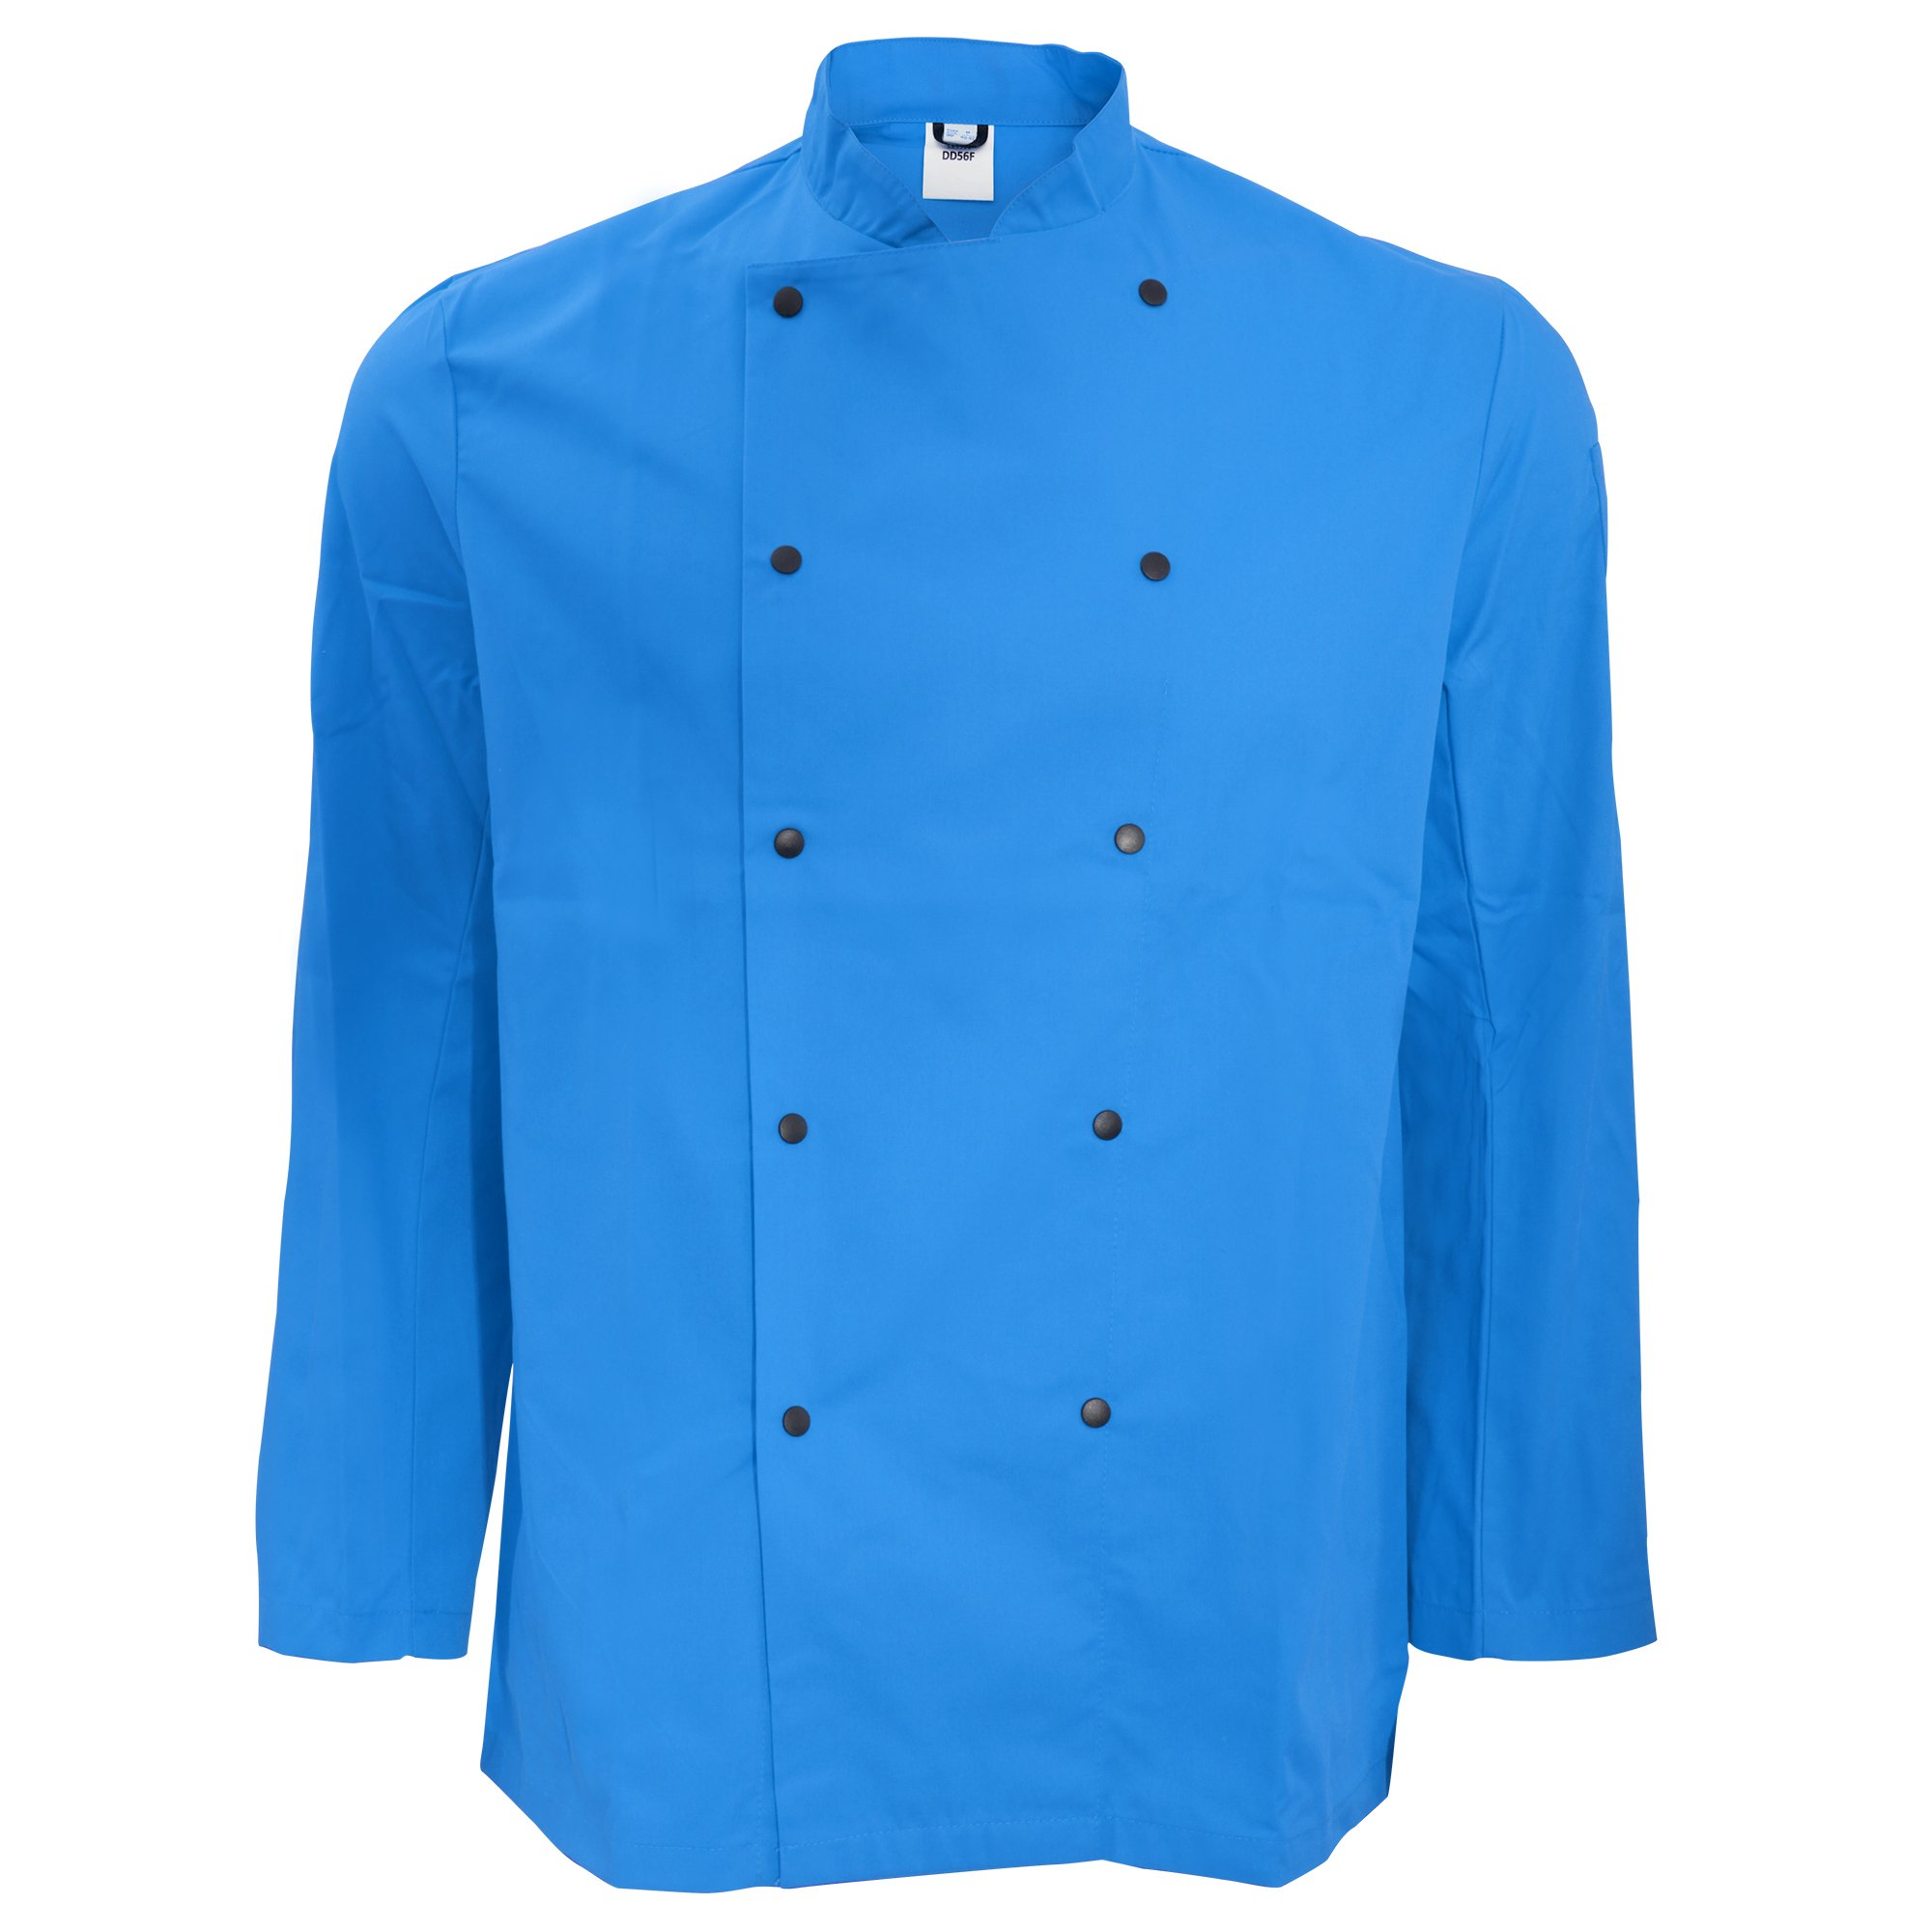 Dennys Unisex Long Sleeve Stud Button Chef Jacket (L) (Royal) by Denny's